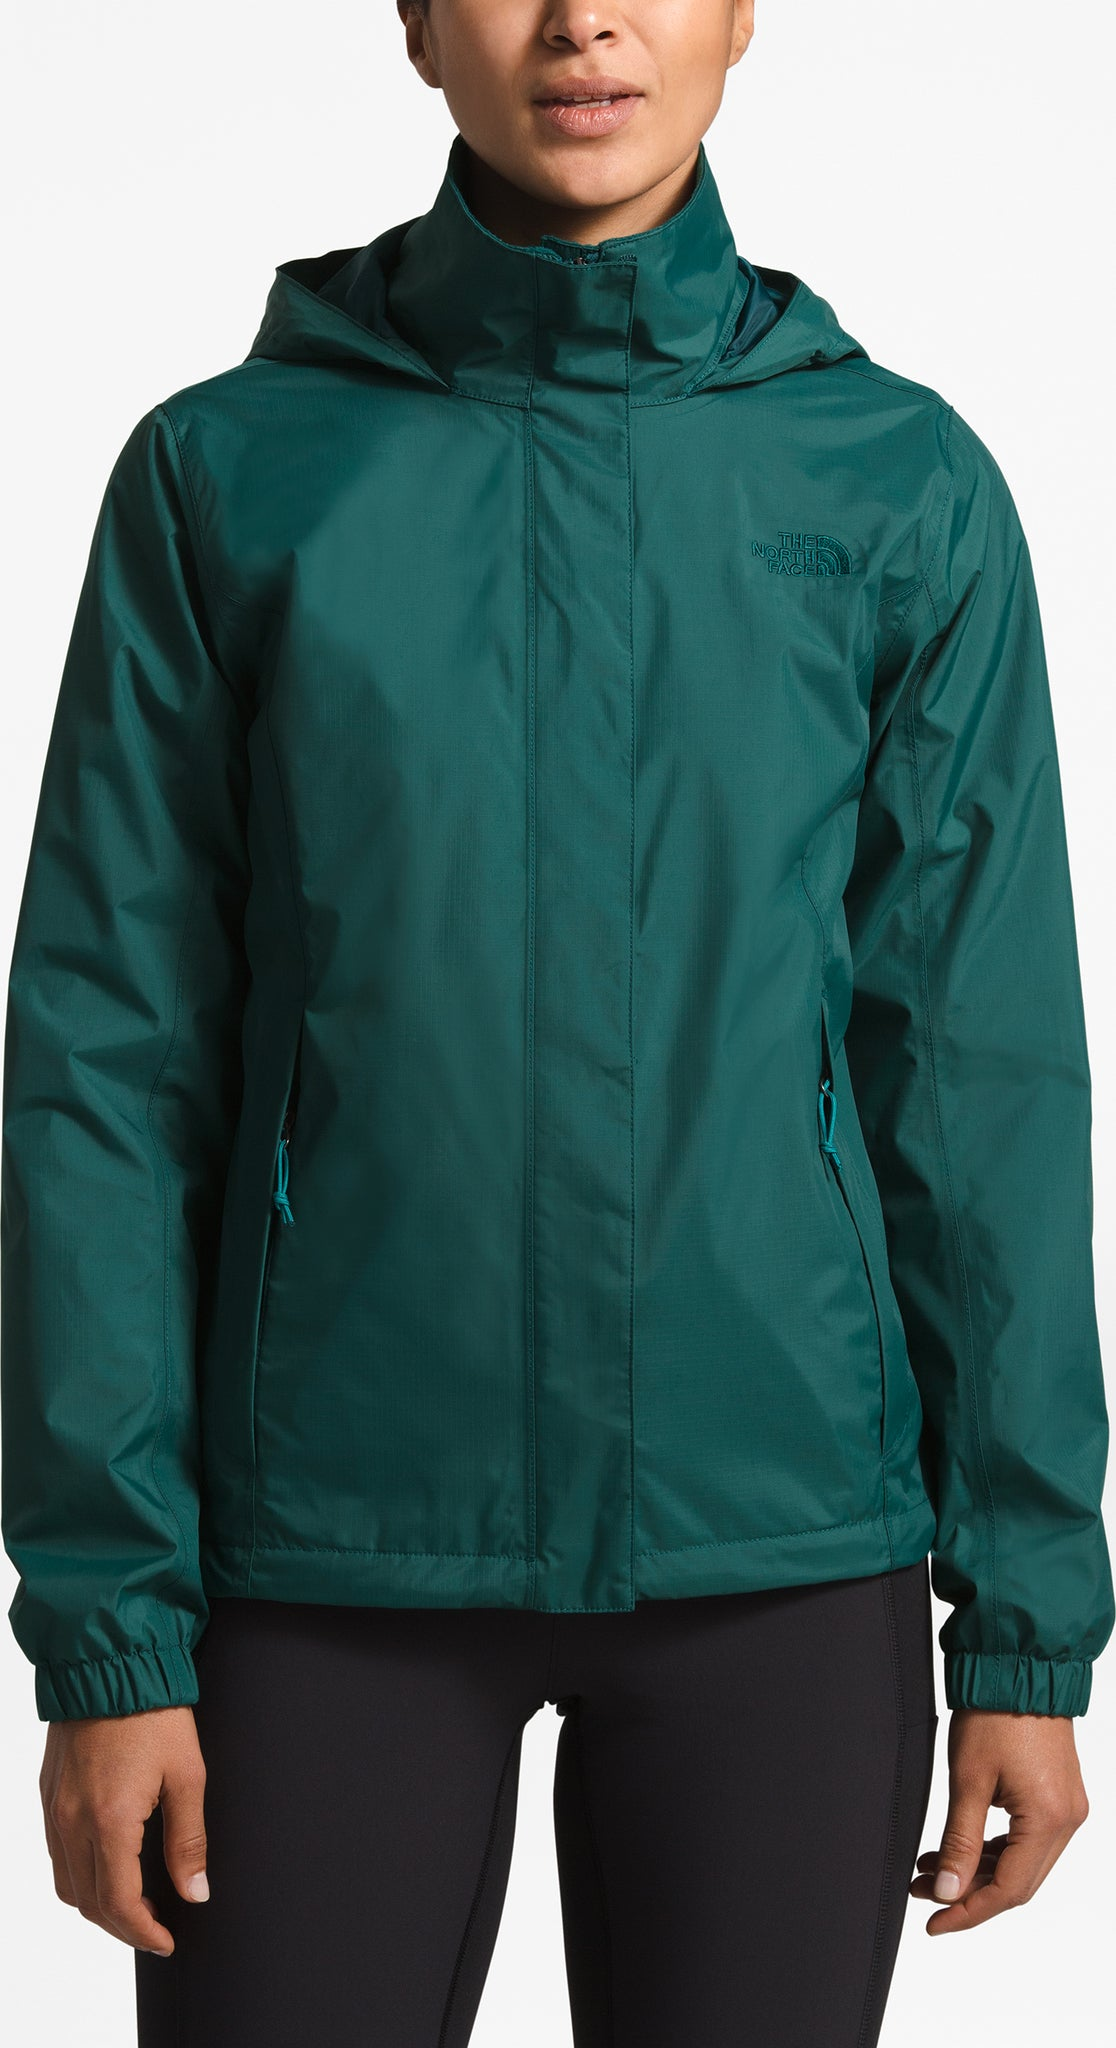 6c20cee14 The North Face Resolve 2 Jacket - Women's   Altitude Sports